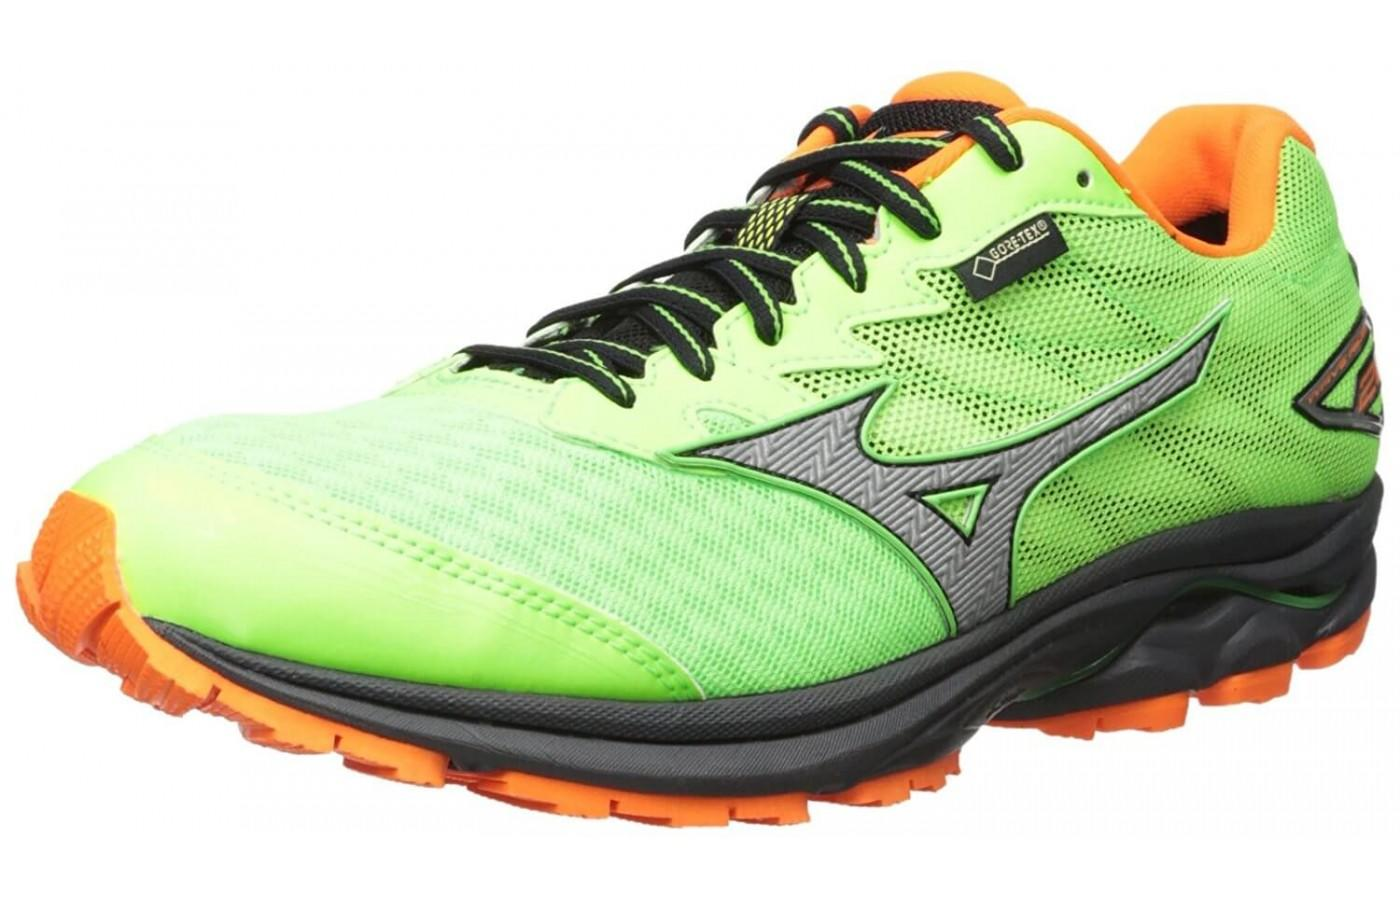 a look at the Mizuno Wave Rider 20 GTX